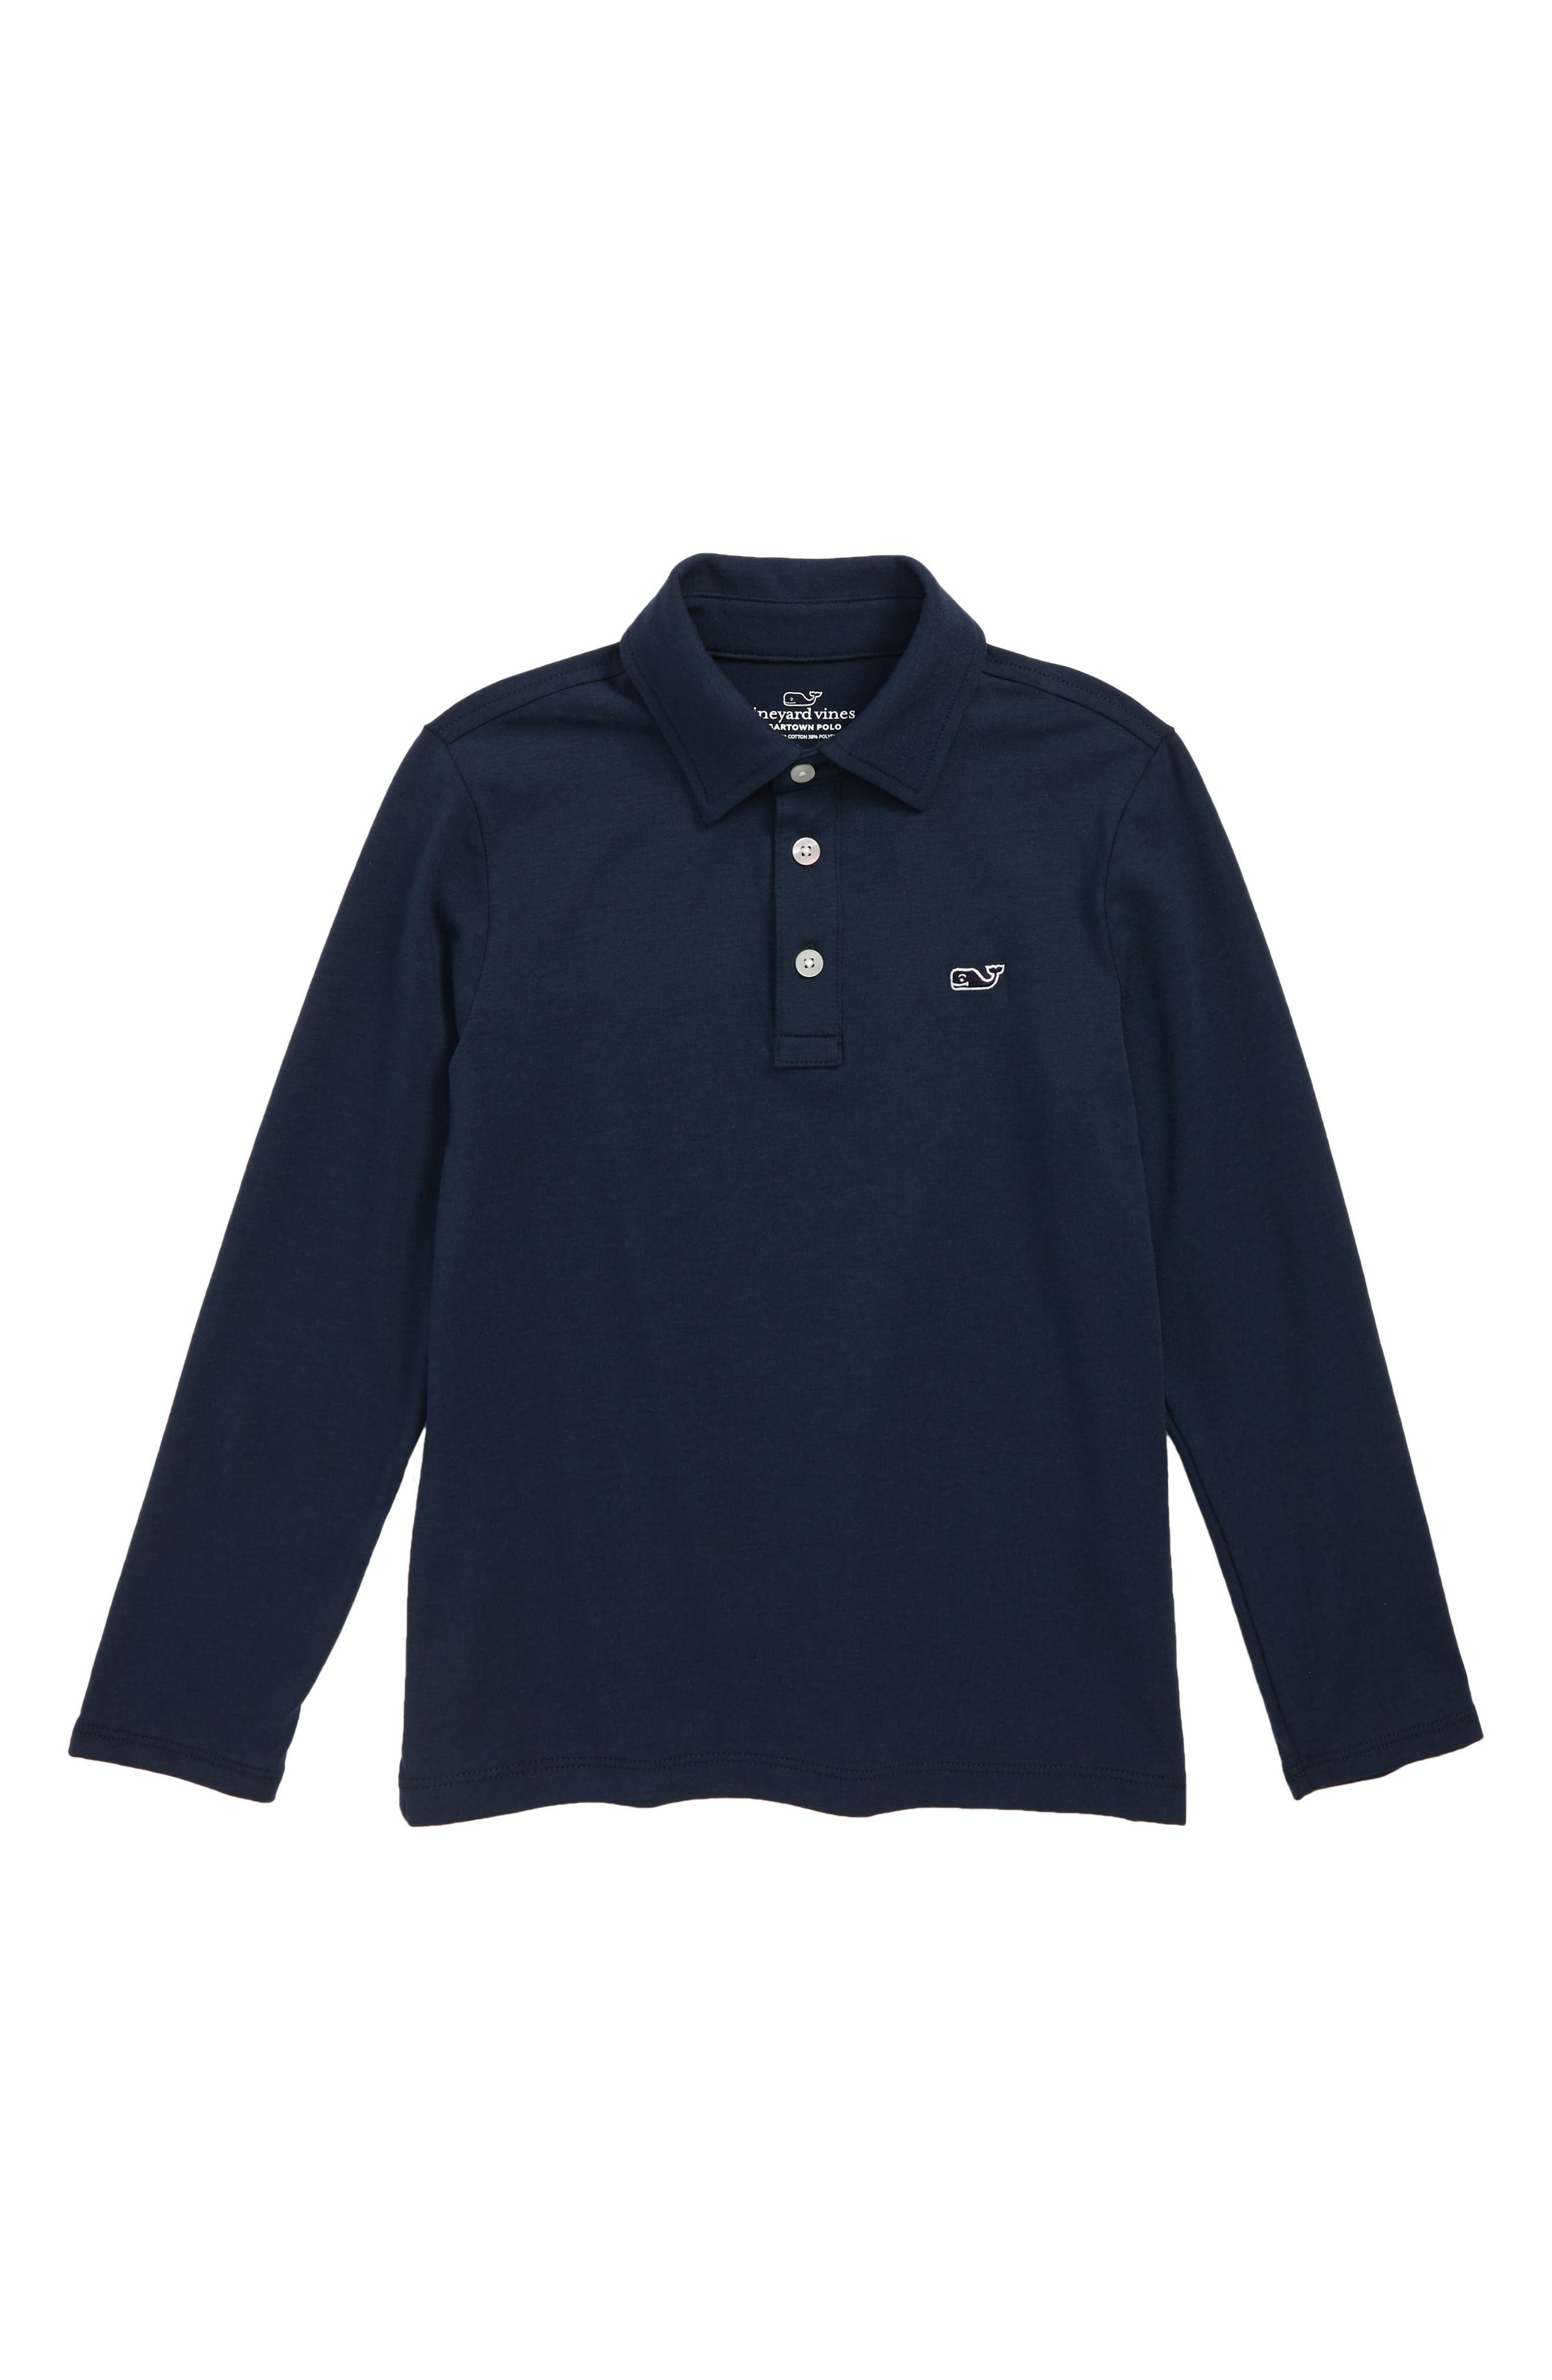 Edgartown Polo,                         Main,                         color, VINEYARD NAVY